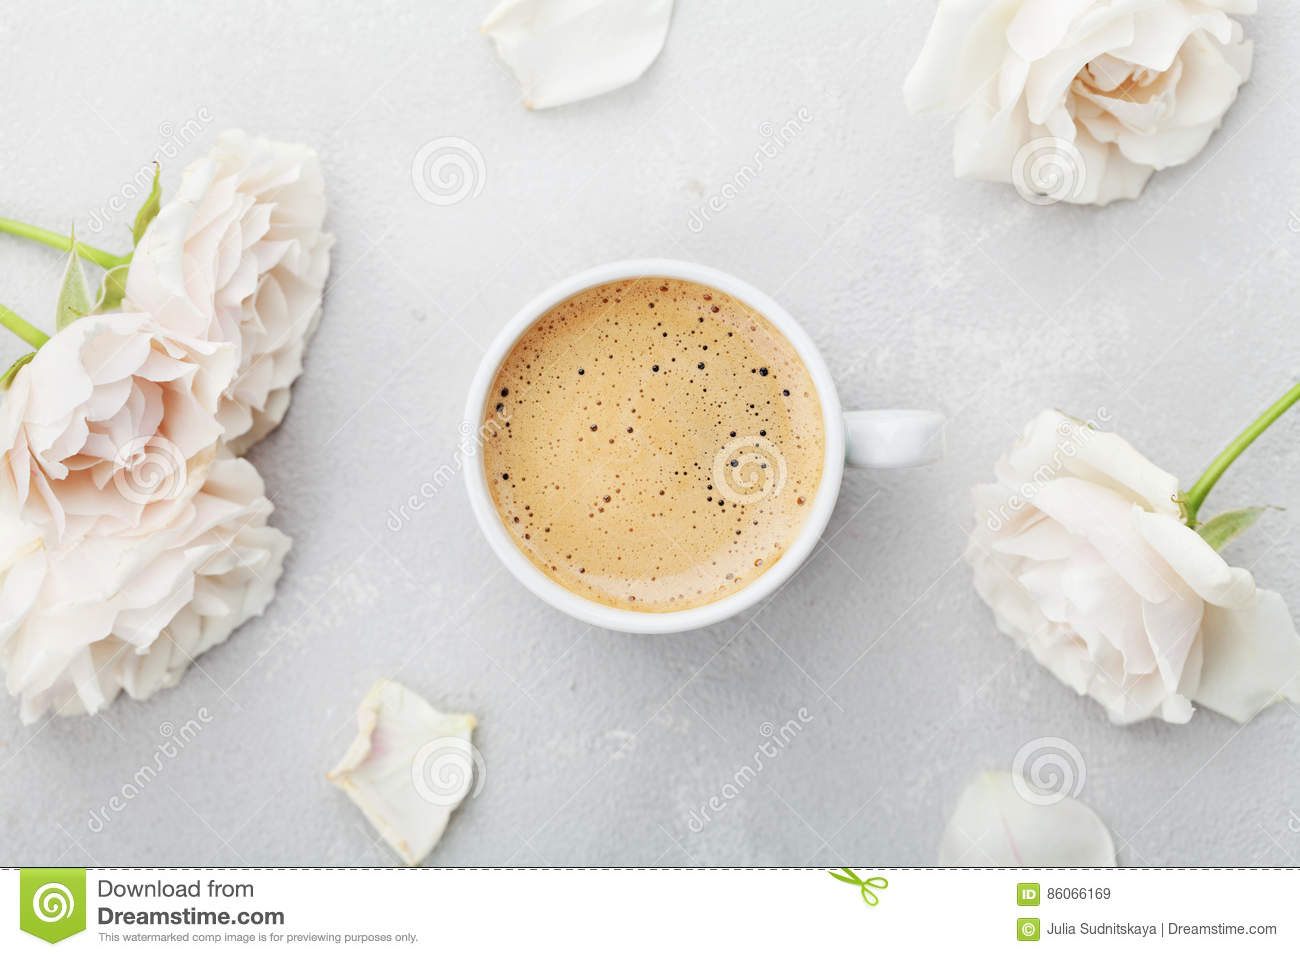 Coffee mug and vintage rose flowers for good morning on gray stone table from above in flat lay style. Beautiful breakfast.